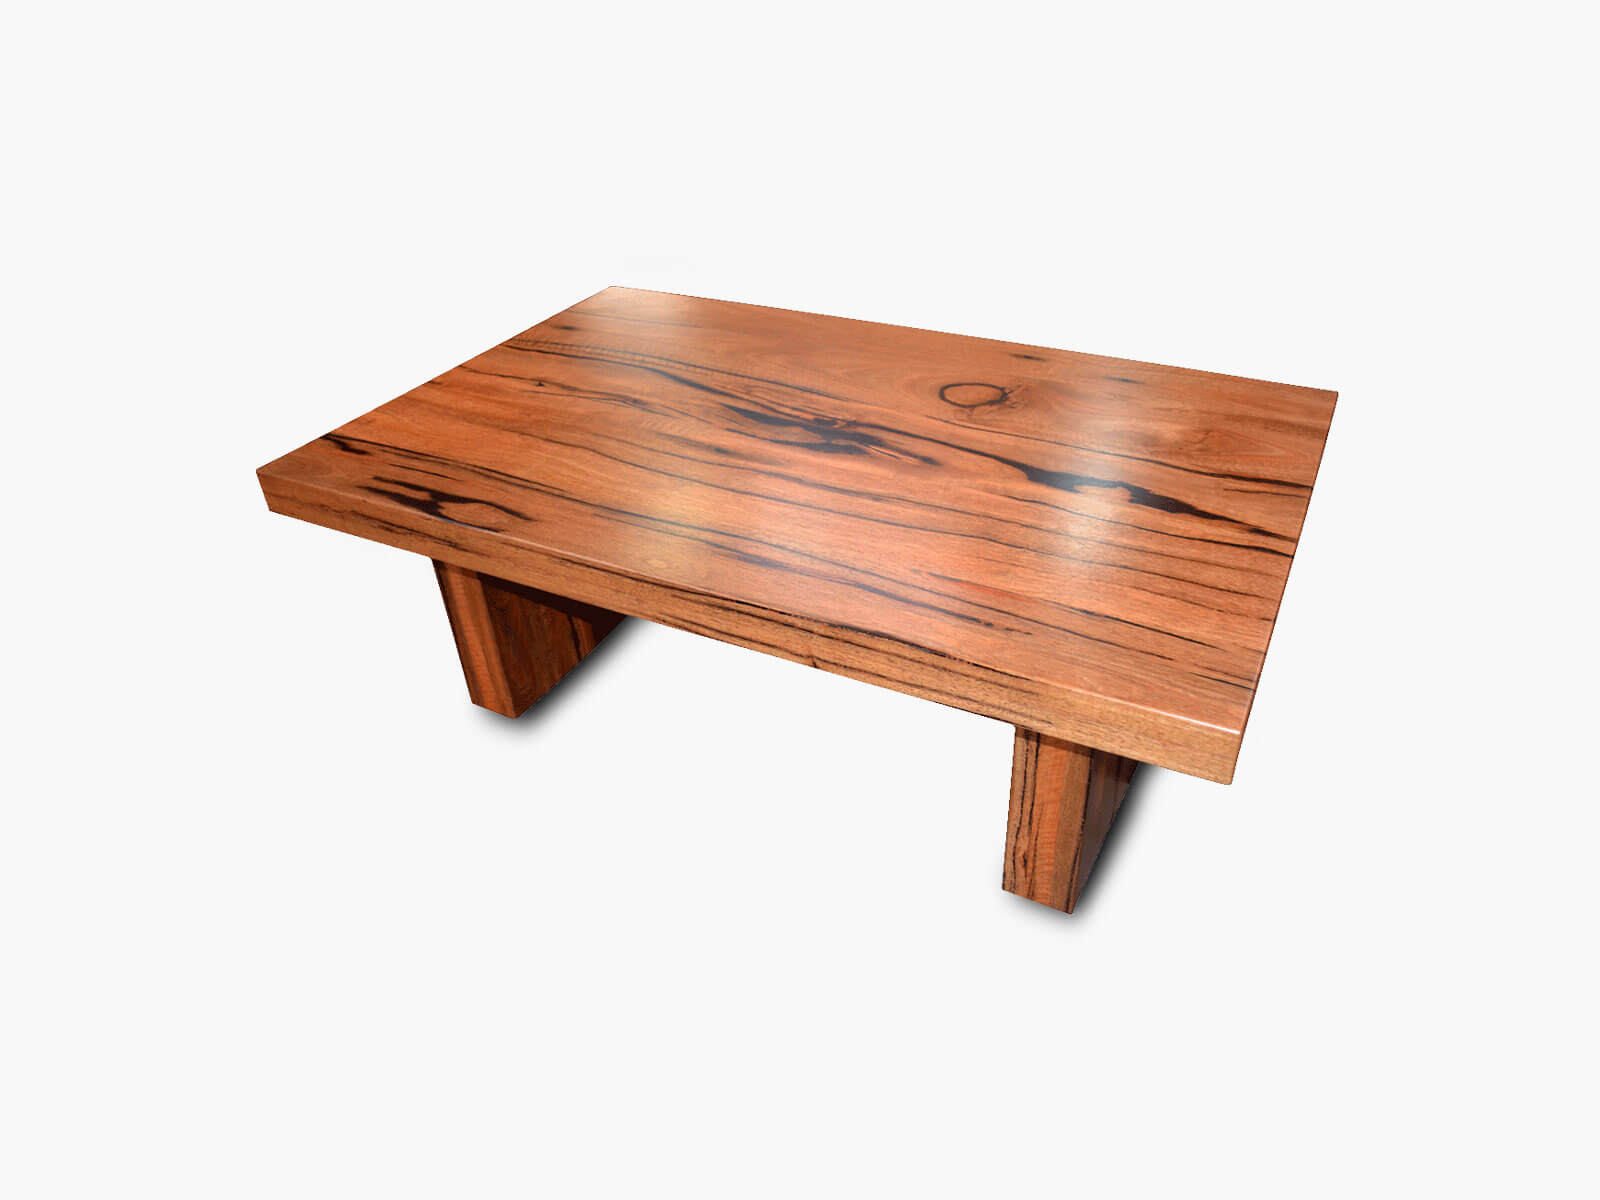 Dampier Marri Coffee Table